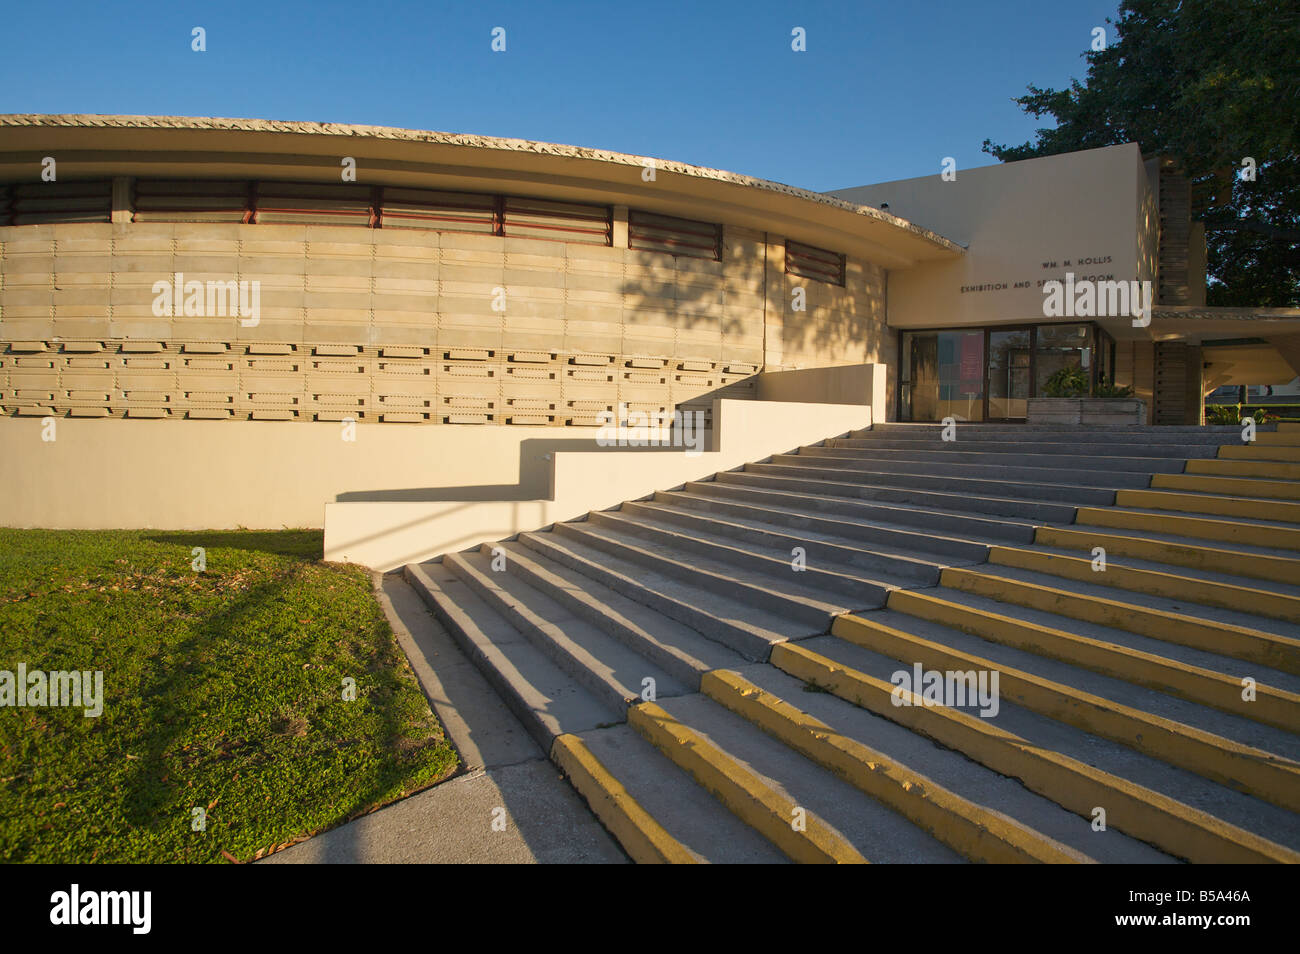 Designed by architect Frank Lloyd Wright the Thad Buckner building on the campus of Florida Southern College in - Stock Image